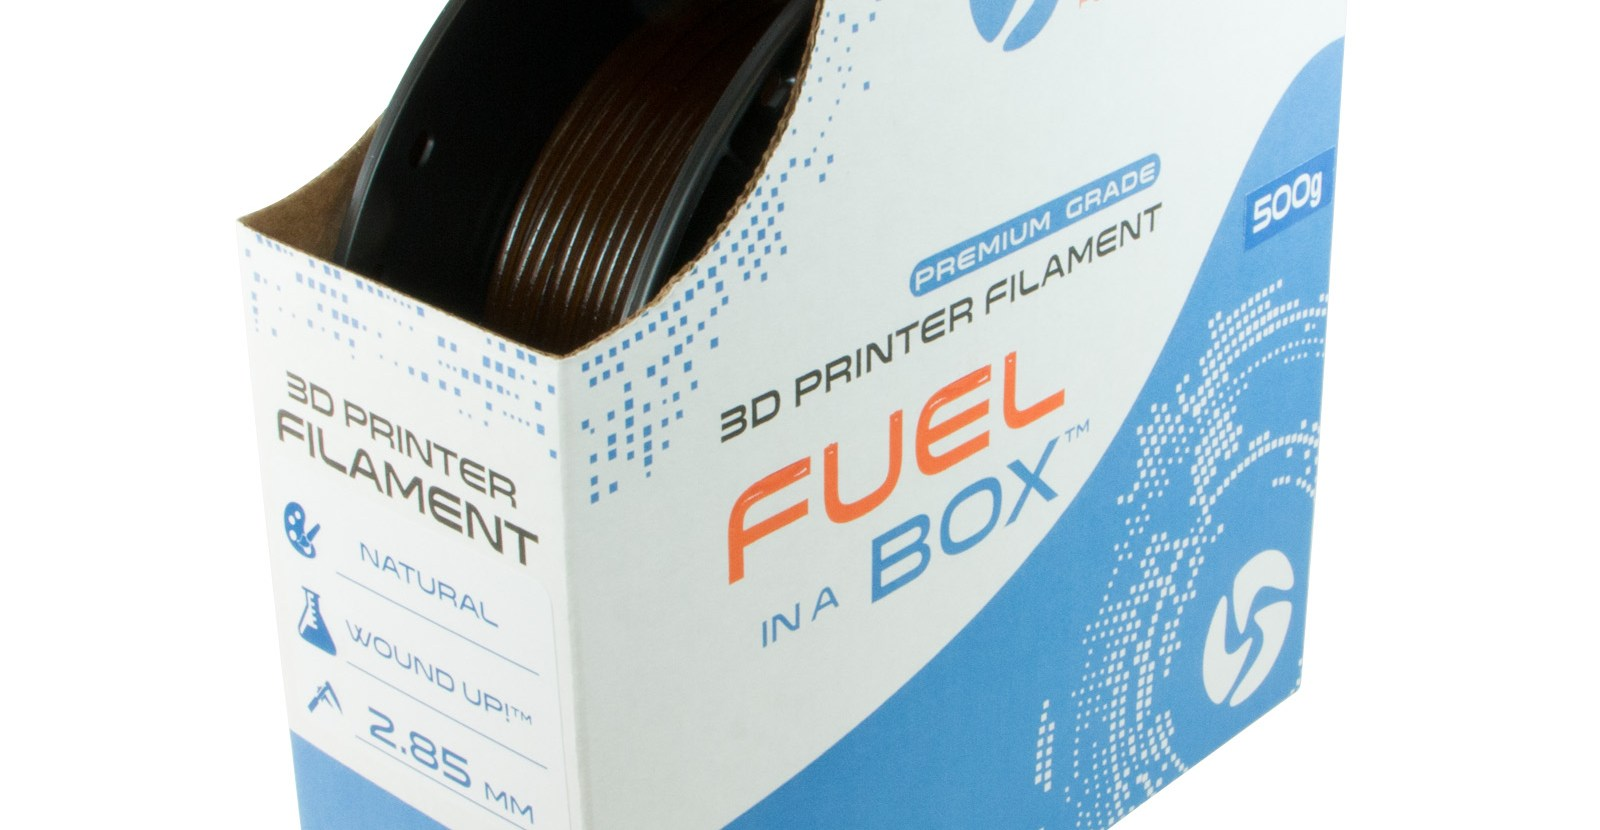 Wound Up - 3D Fuel Coffee Filament